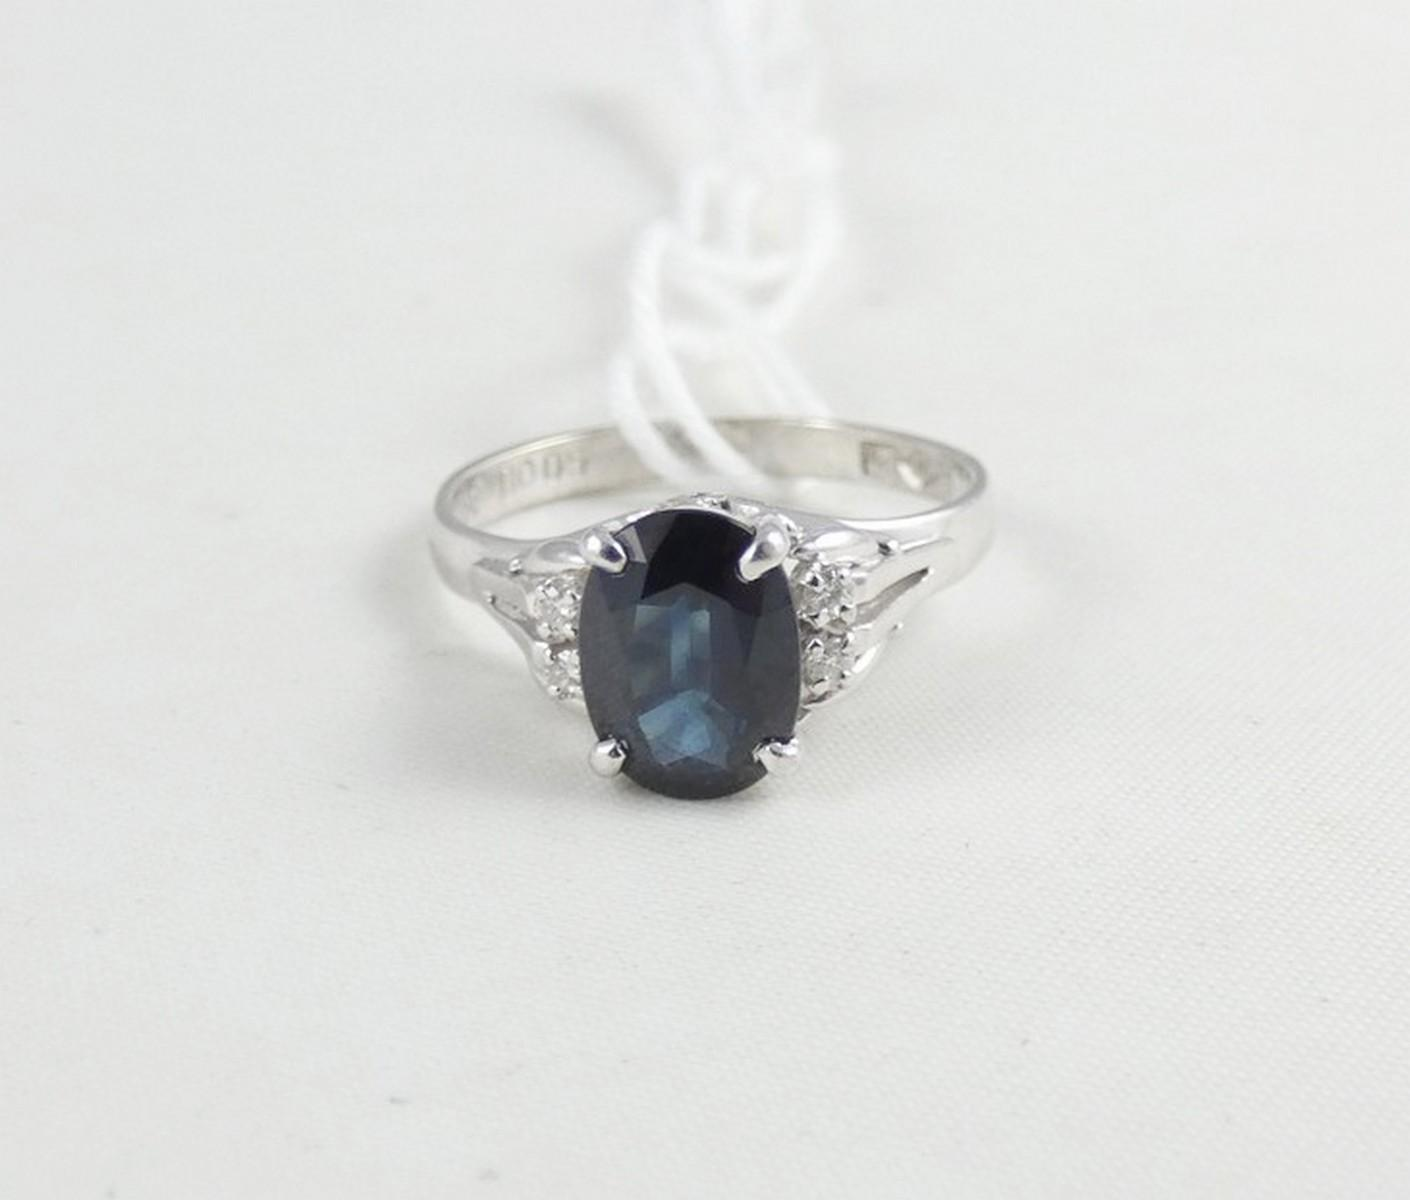 VALUABLE SAPPHIRE RING